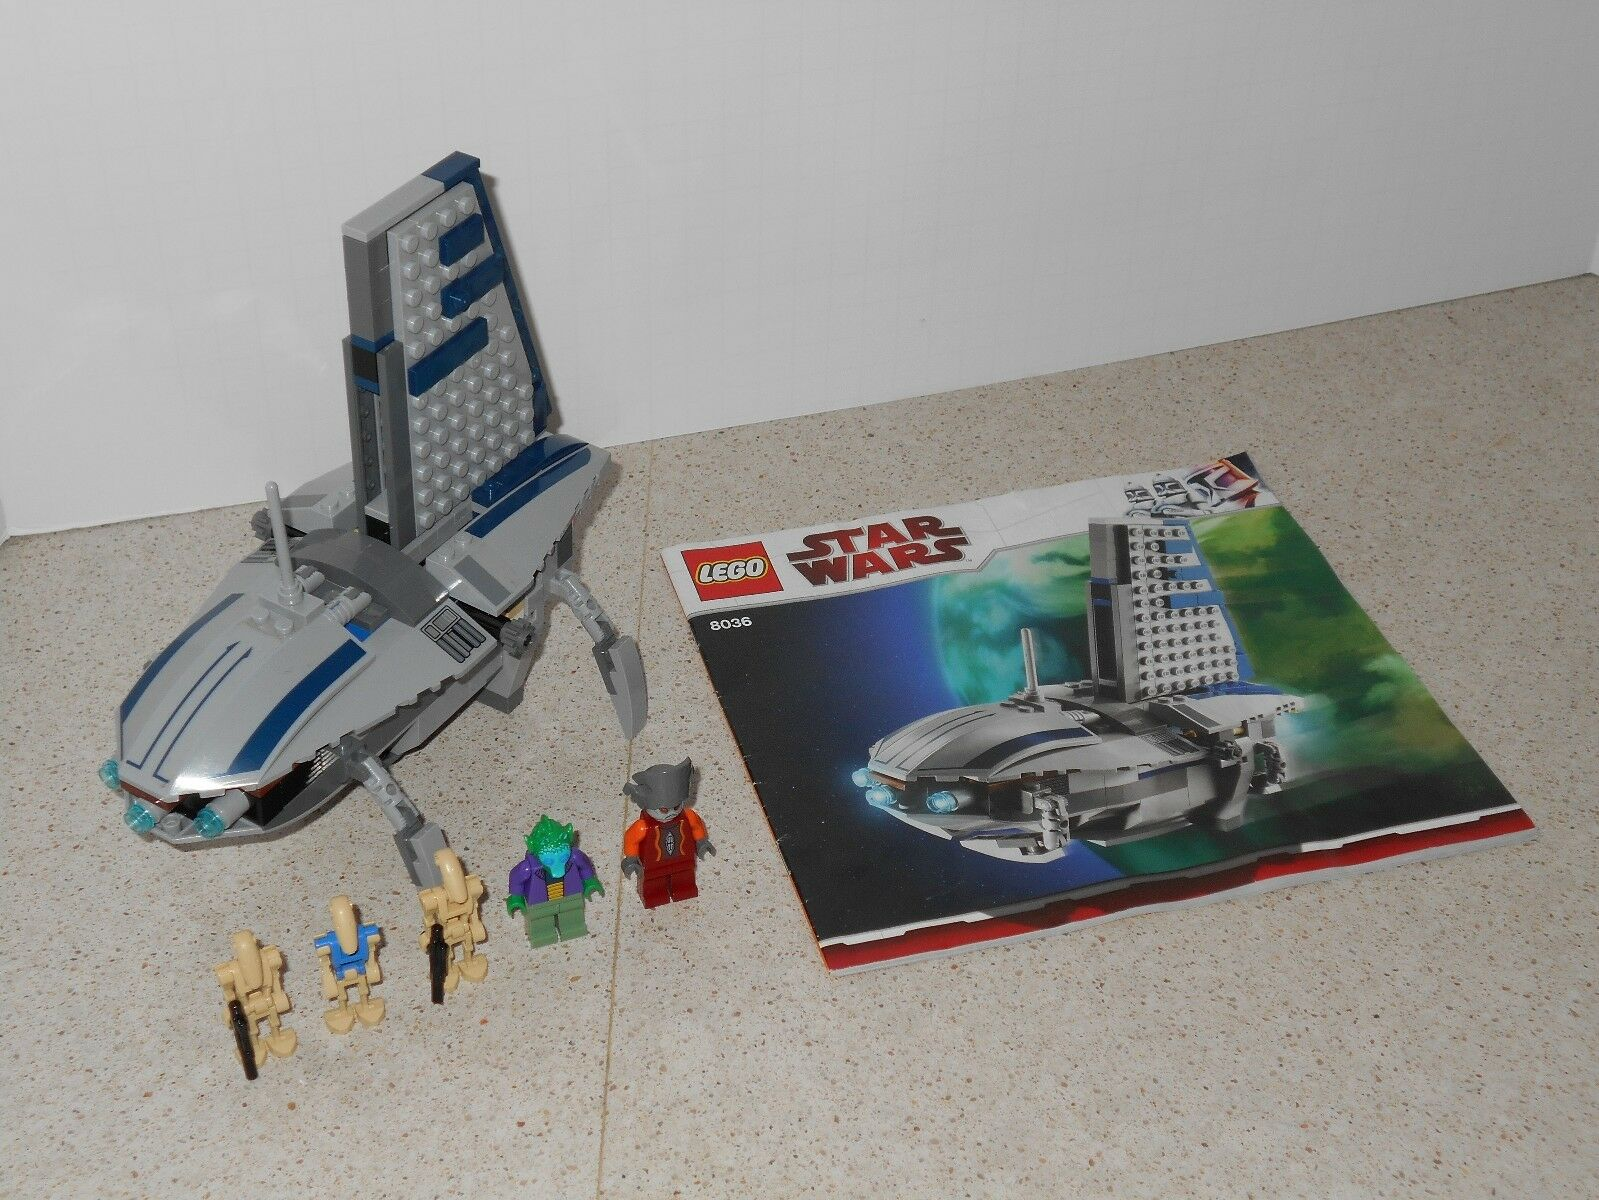 USED LEGO STAR WARS SEPARATIST SHUTTLE (8036) (8036) (8036) - 100% COMPLETE WITH MANUAL c5d2de